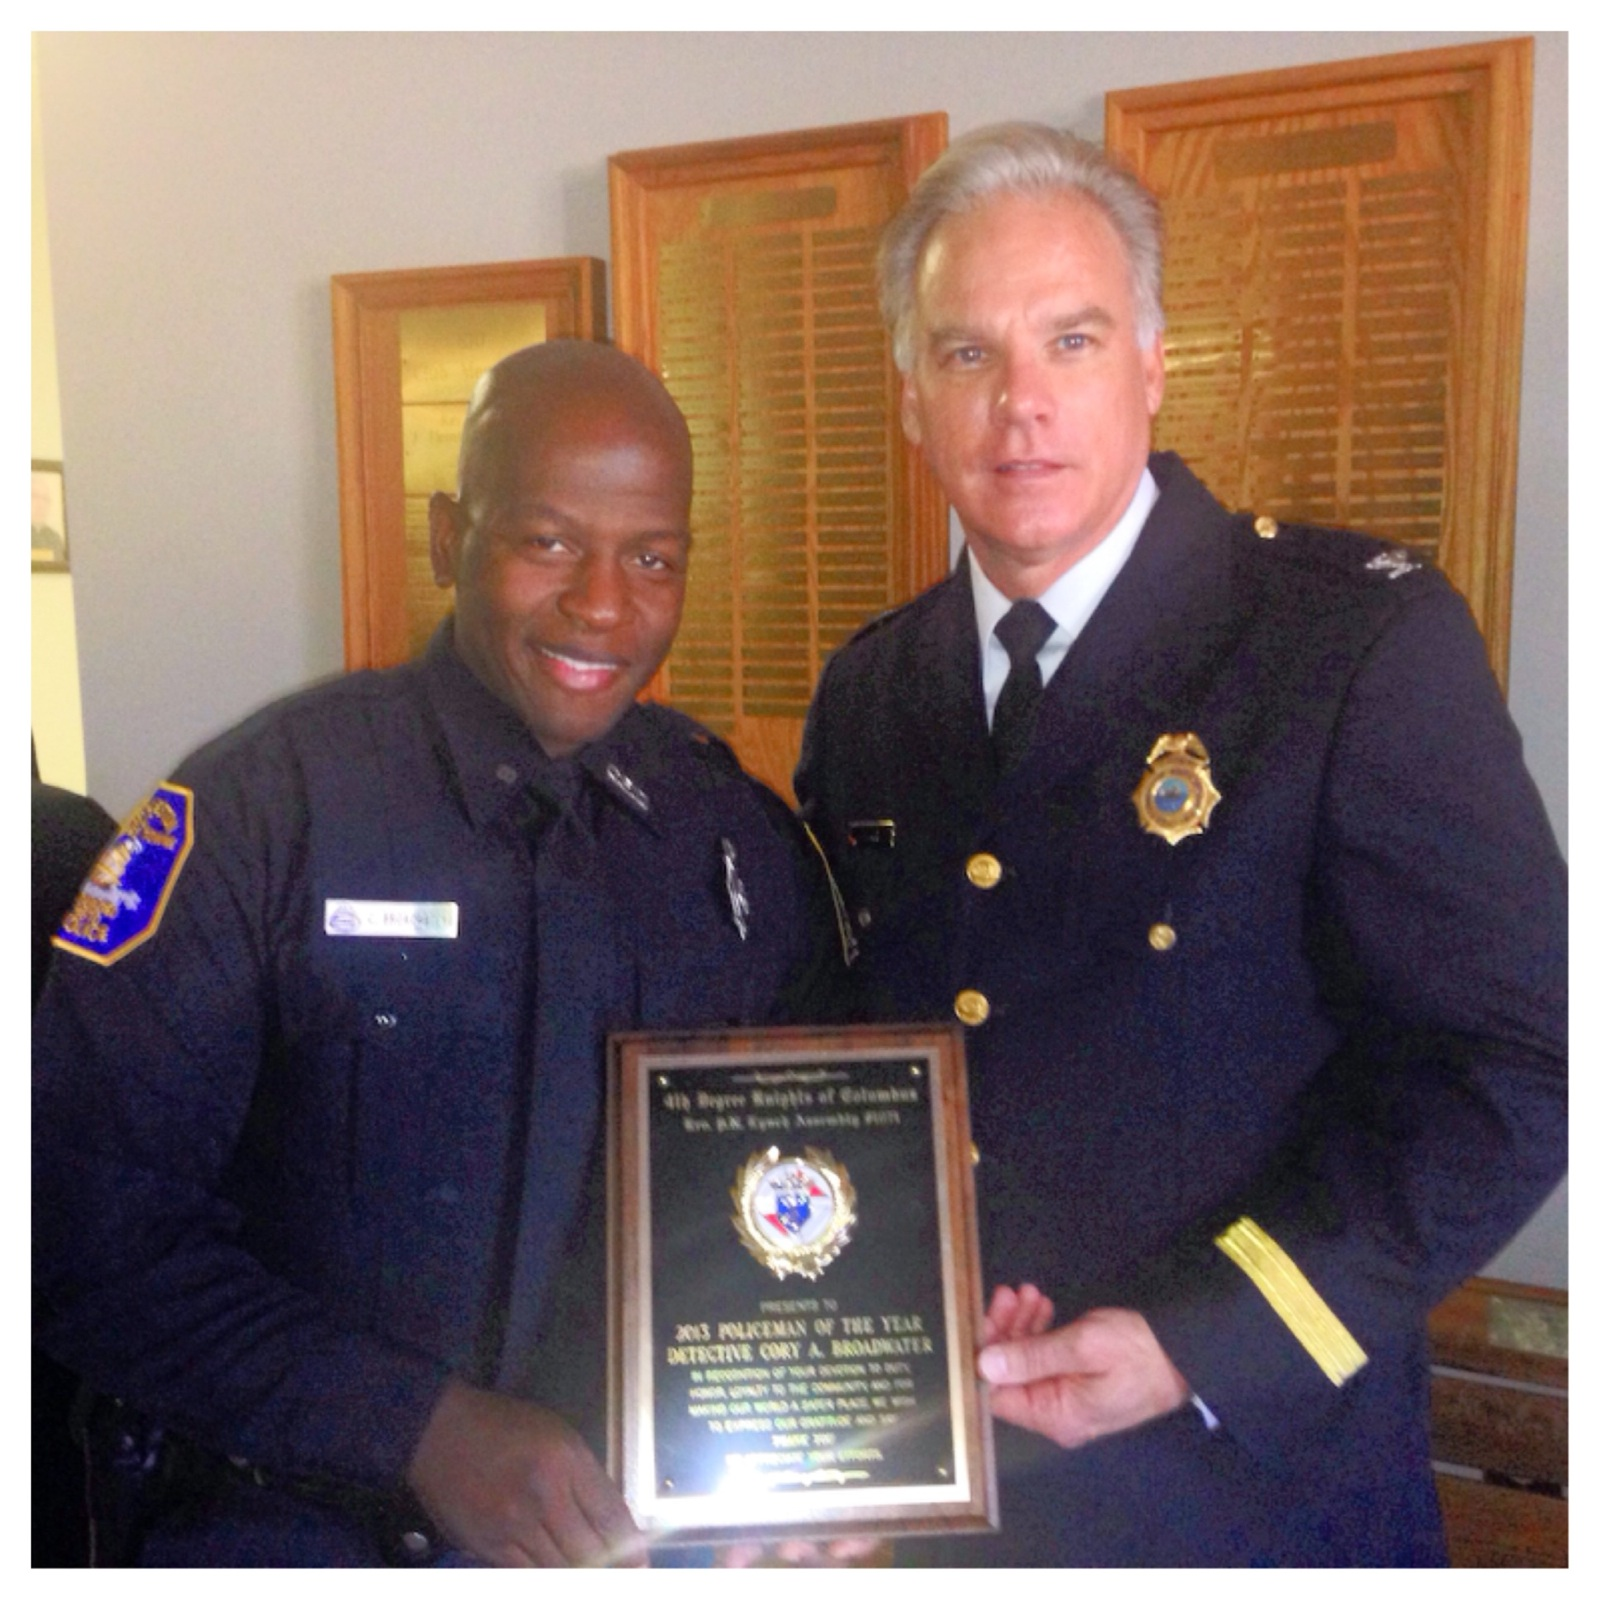 2013 Knights of Columbus Officer of the Year - Detective Broadwater